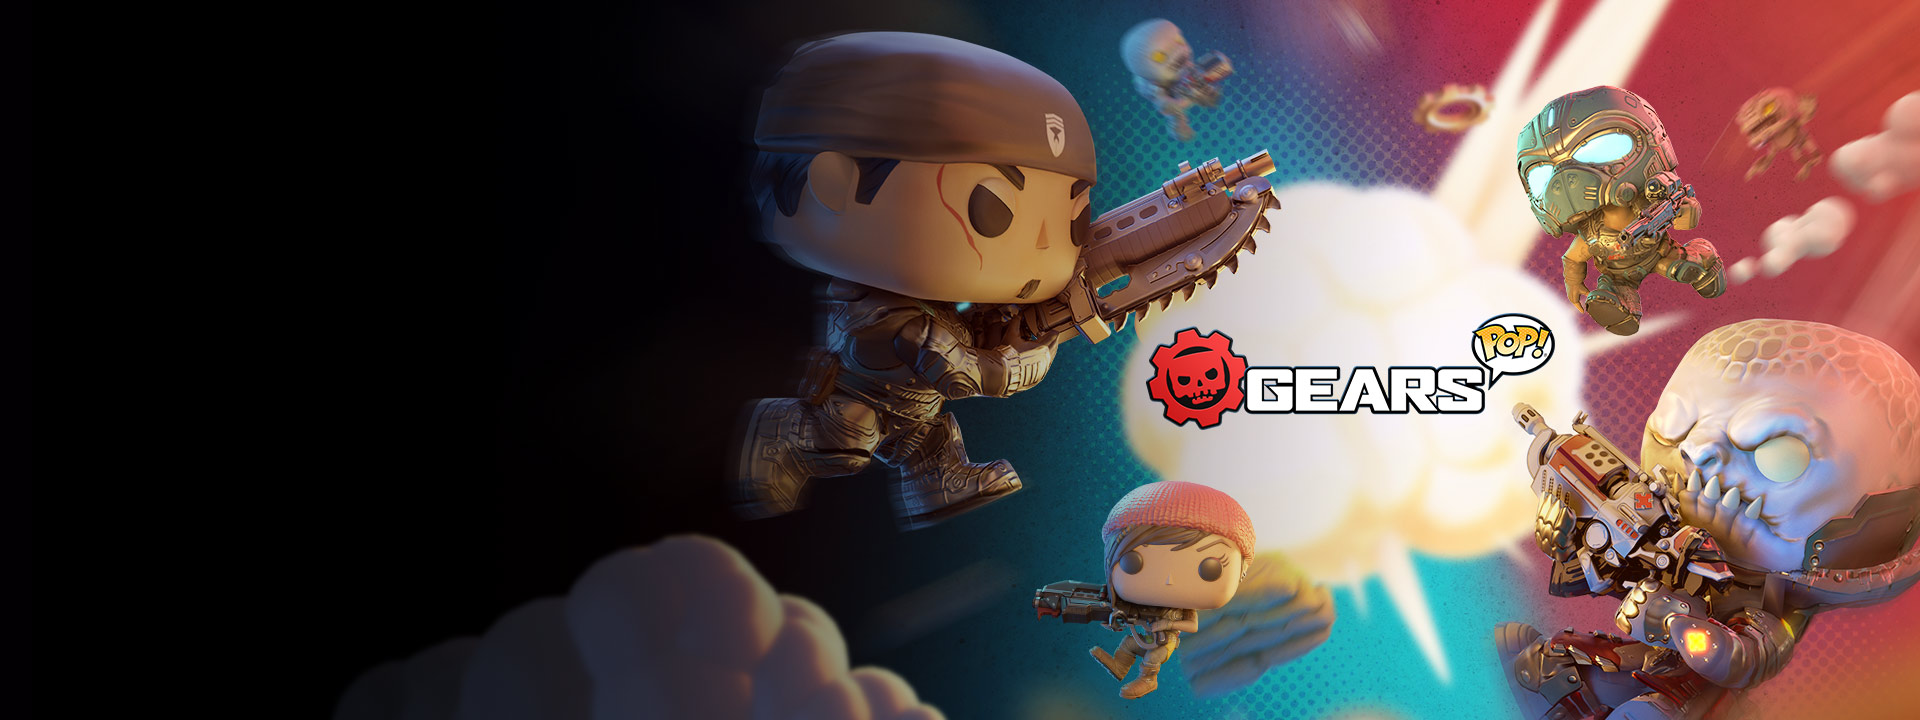 Gears POP, Geras funko pop figures clash around smoke from an explosion